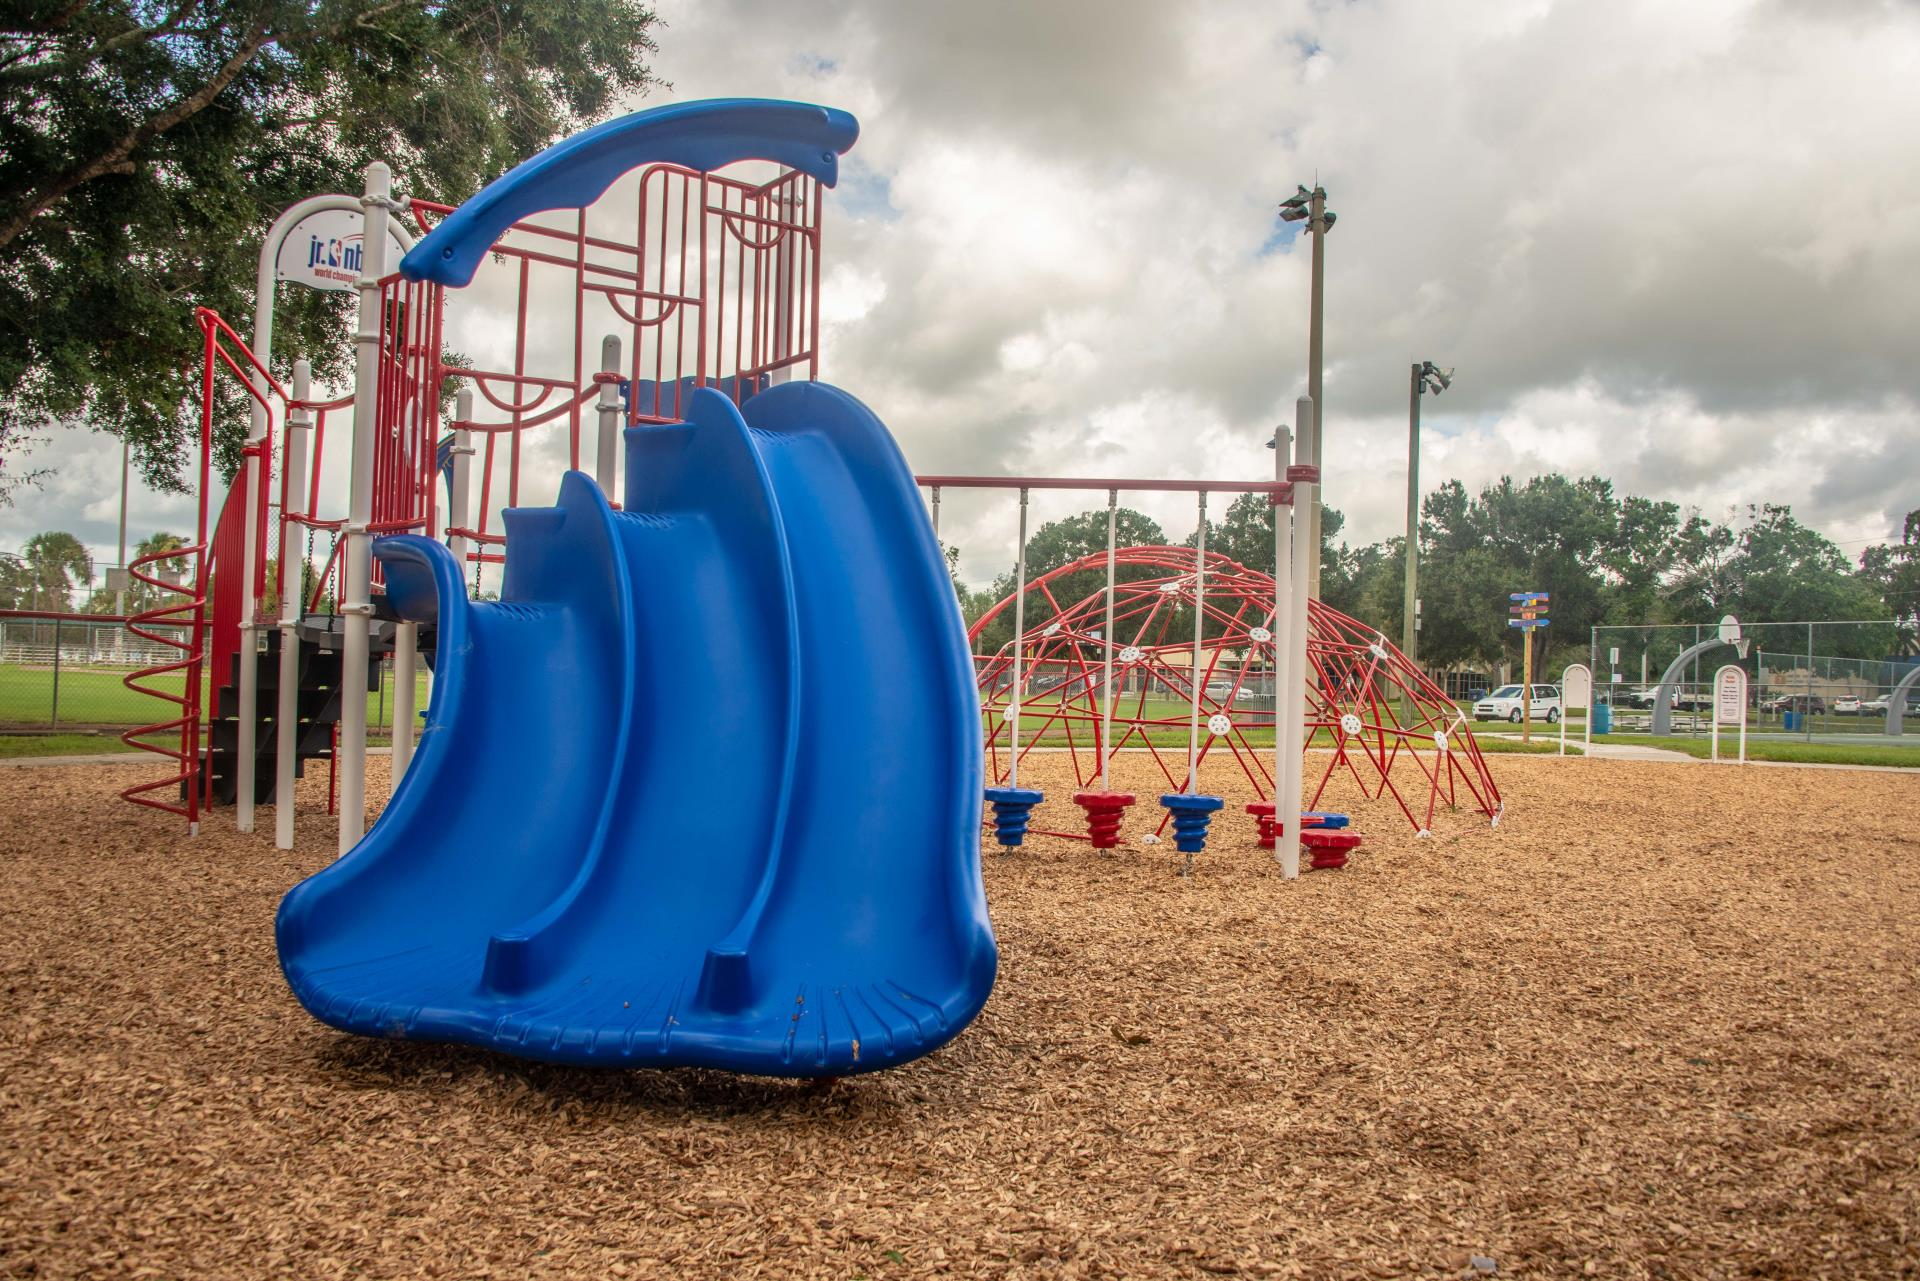 Oak St Park Slides City of Kissimmee Oak Street Park Kaboom Park Build